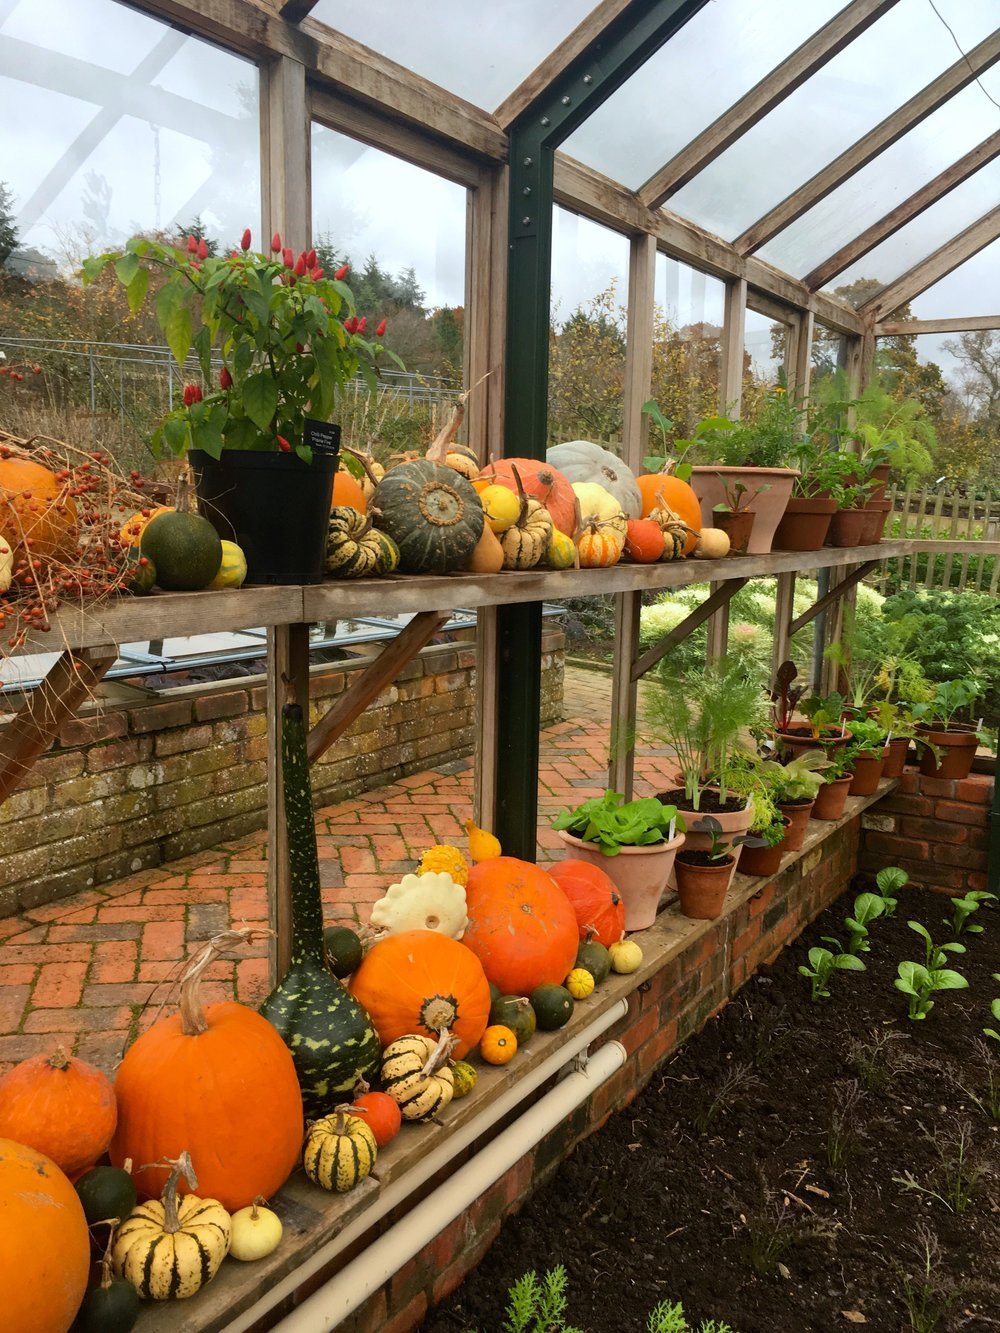 rows of pumpkins in the greenhouse